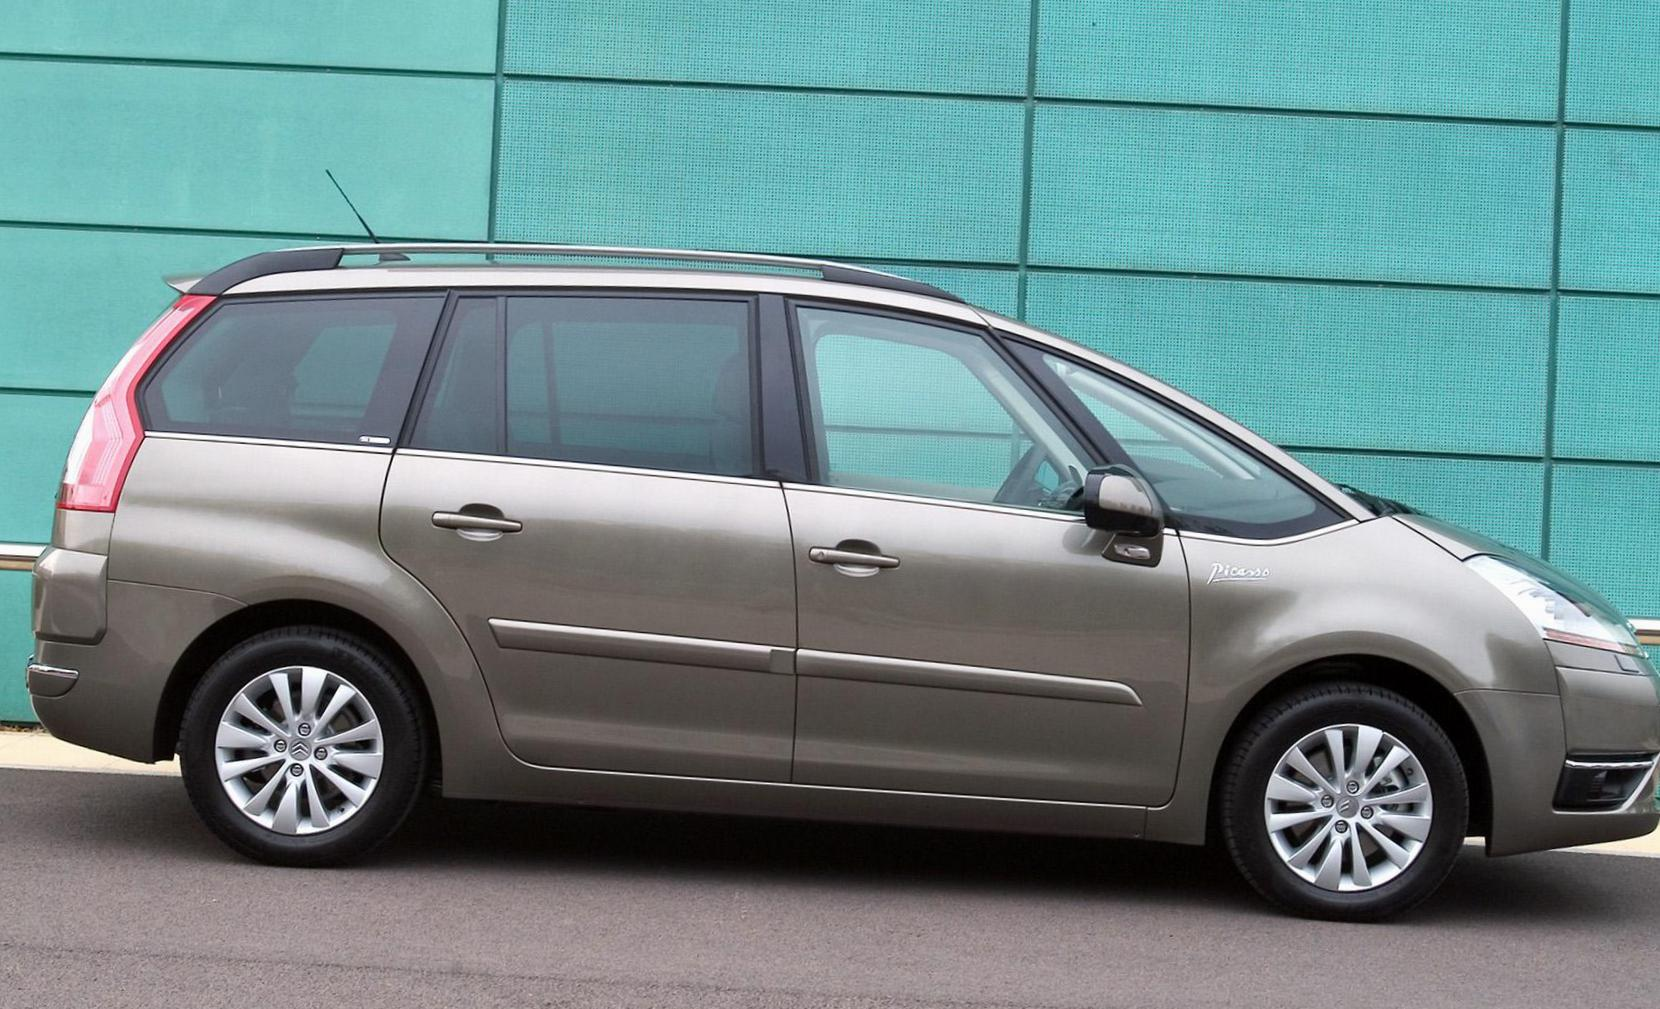 Grand C4 Picasso Citroen approved 2009